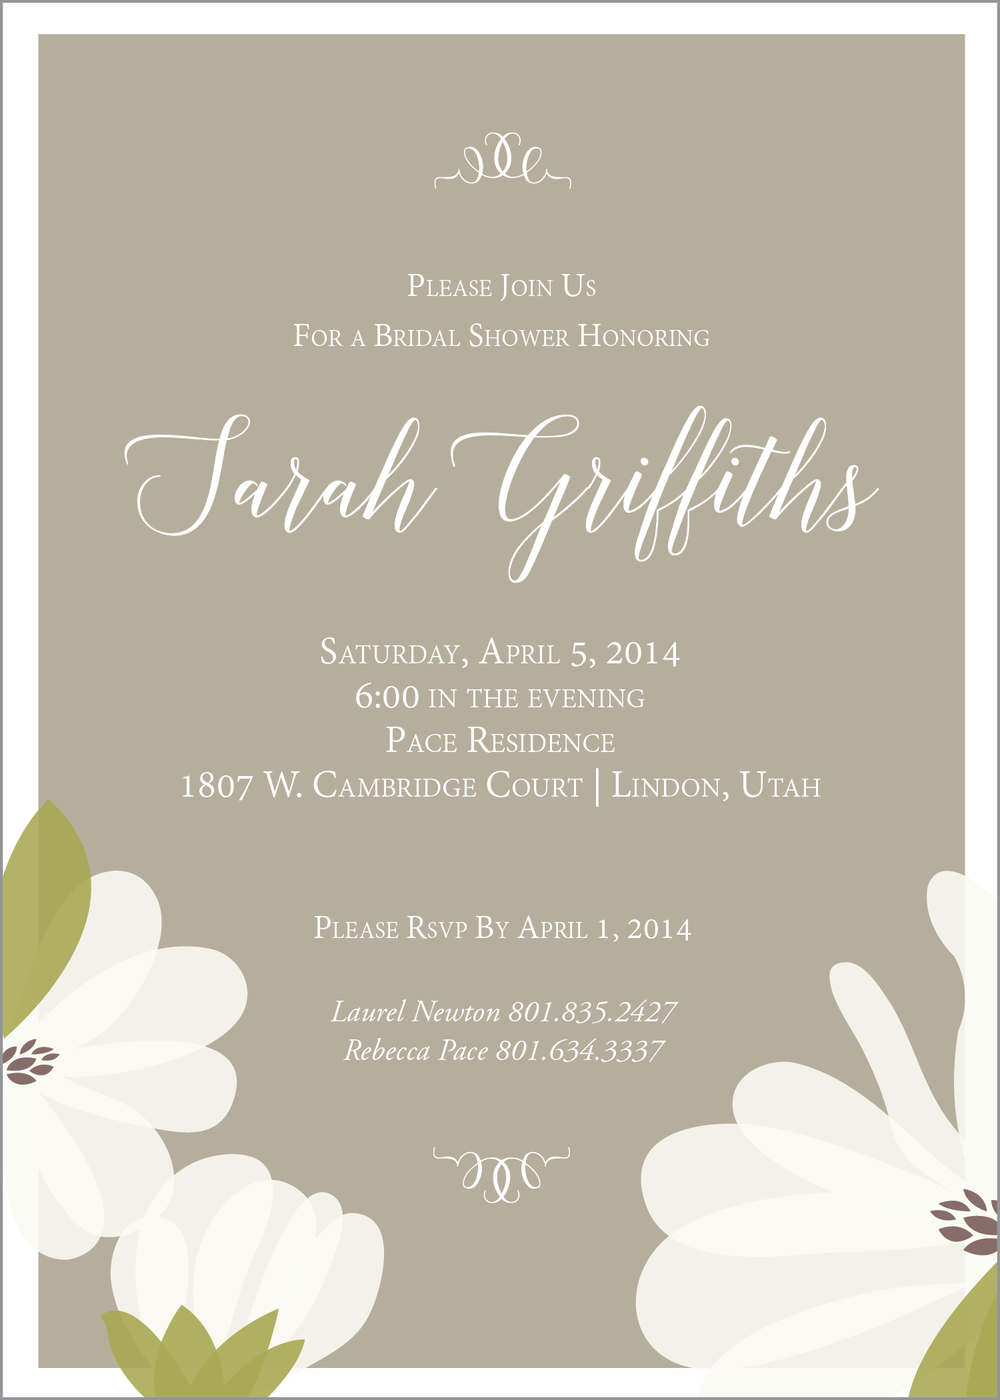 Bridal-shower-invitation-design.png